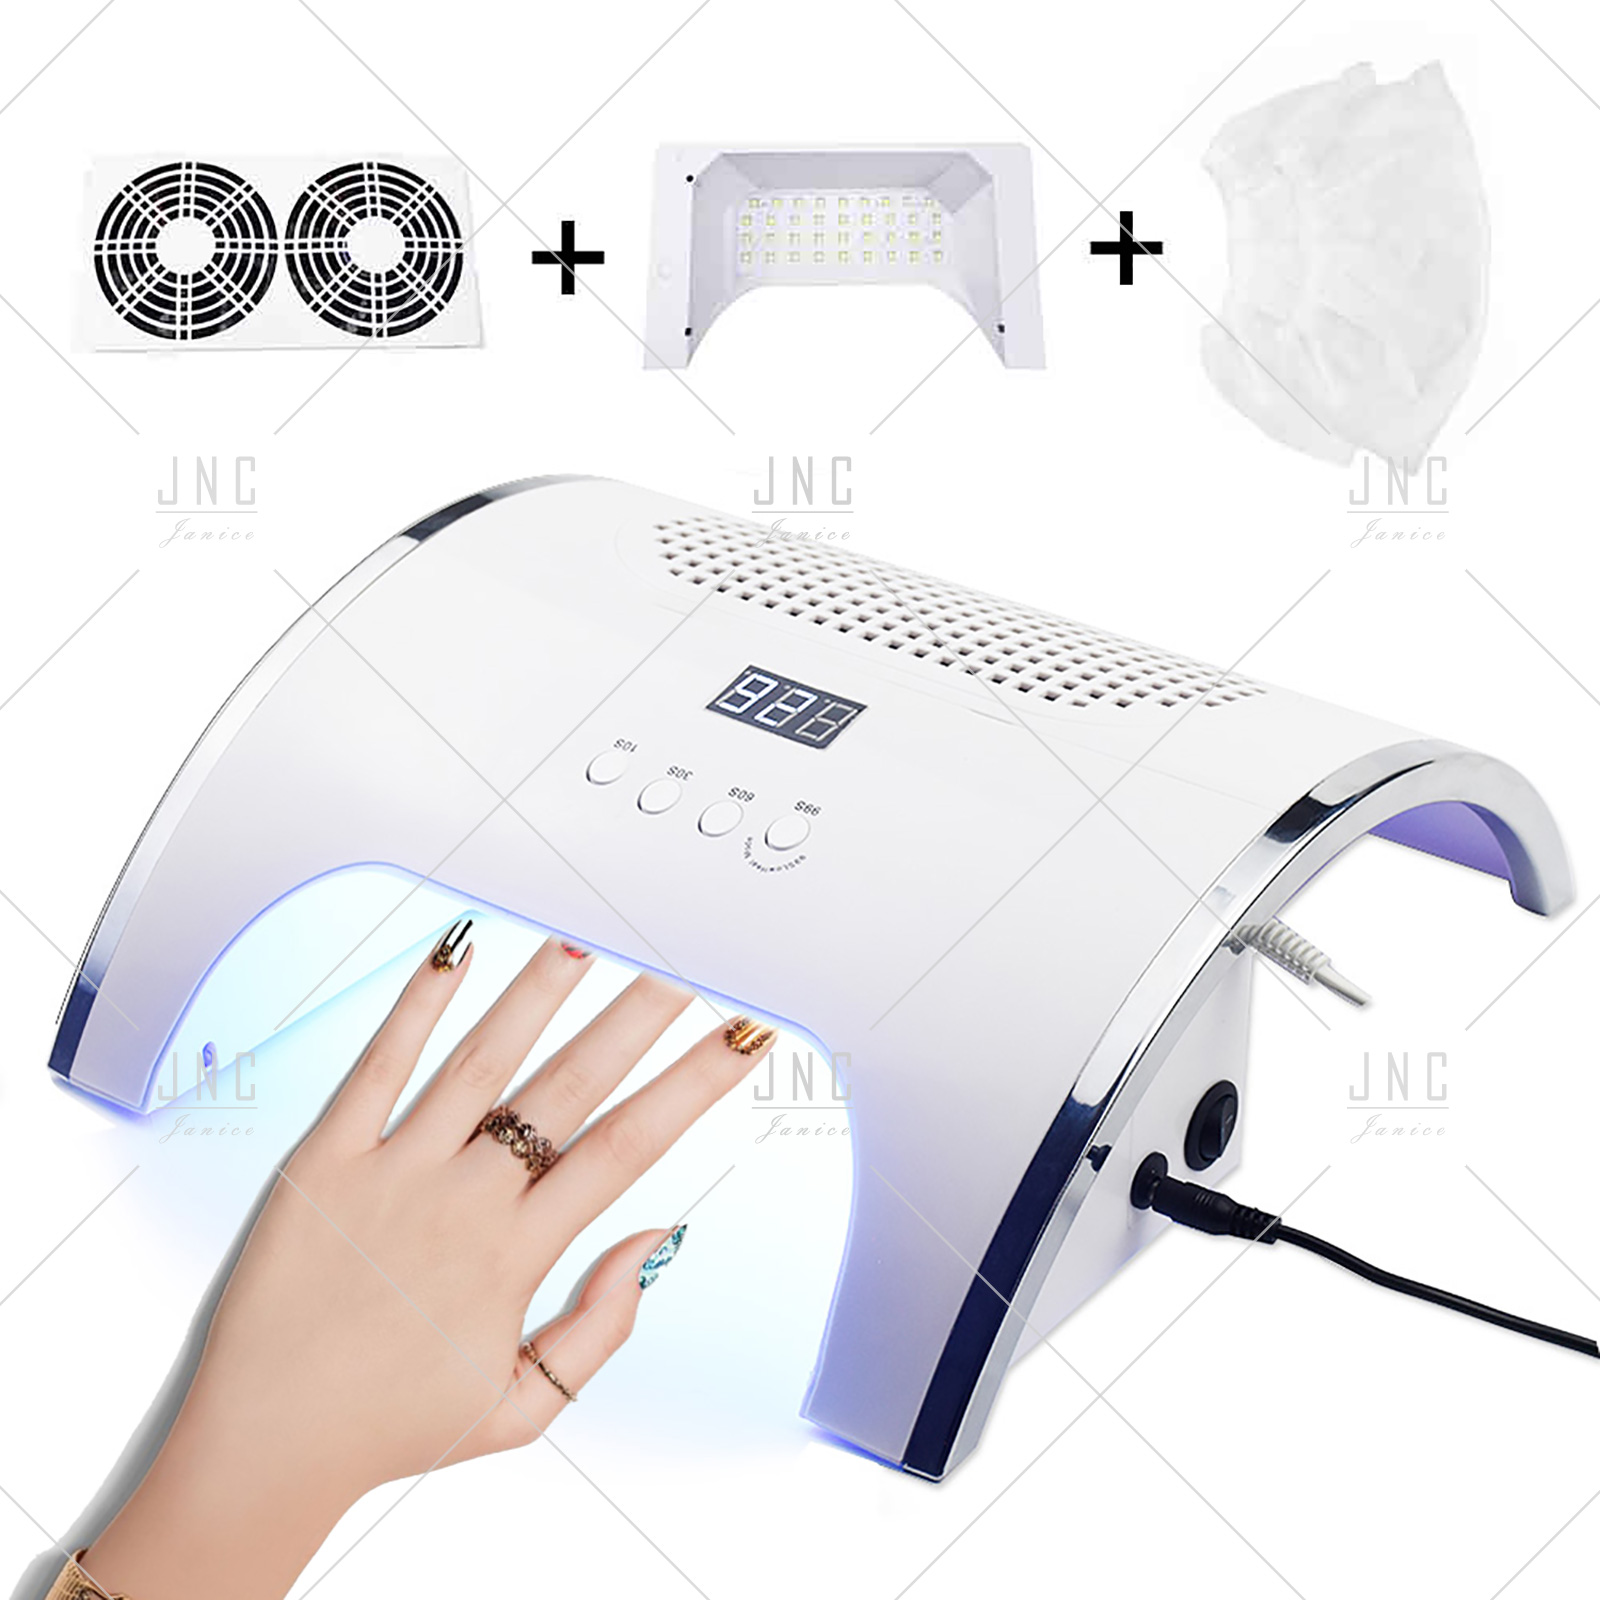 2 in 1 - Nail Lamp & Fan | Catalisador e Aspirador 80W | Ref.861867